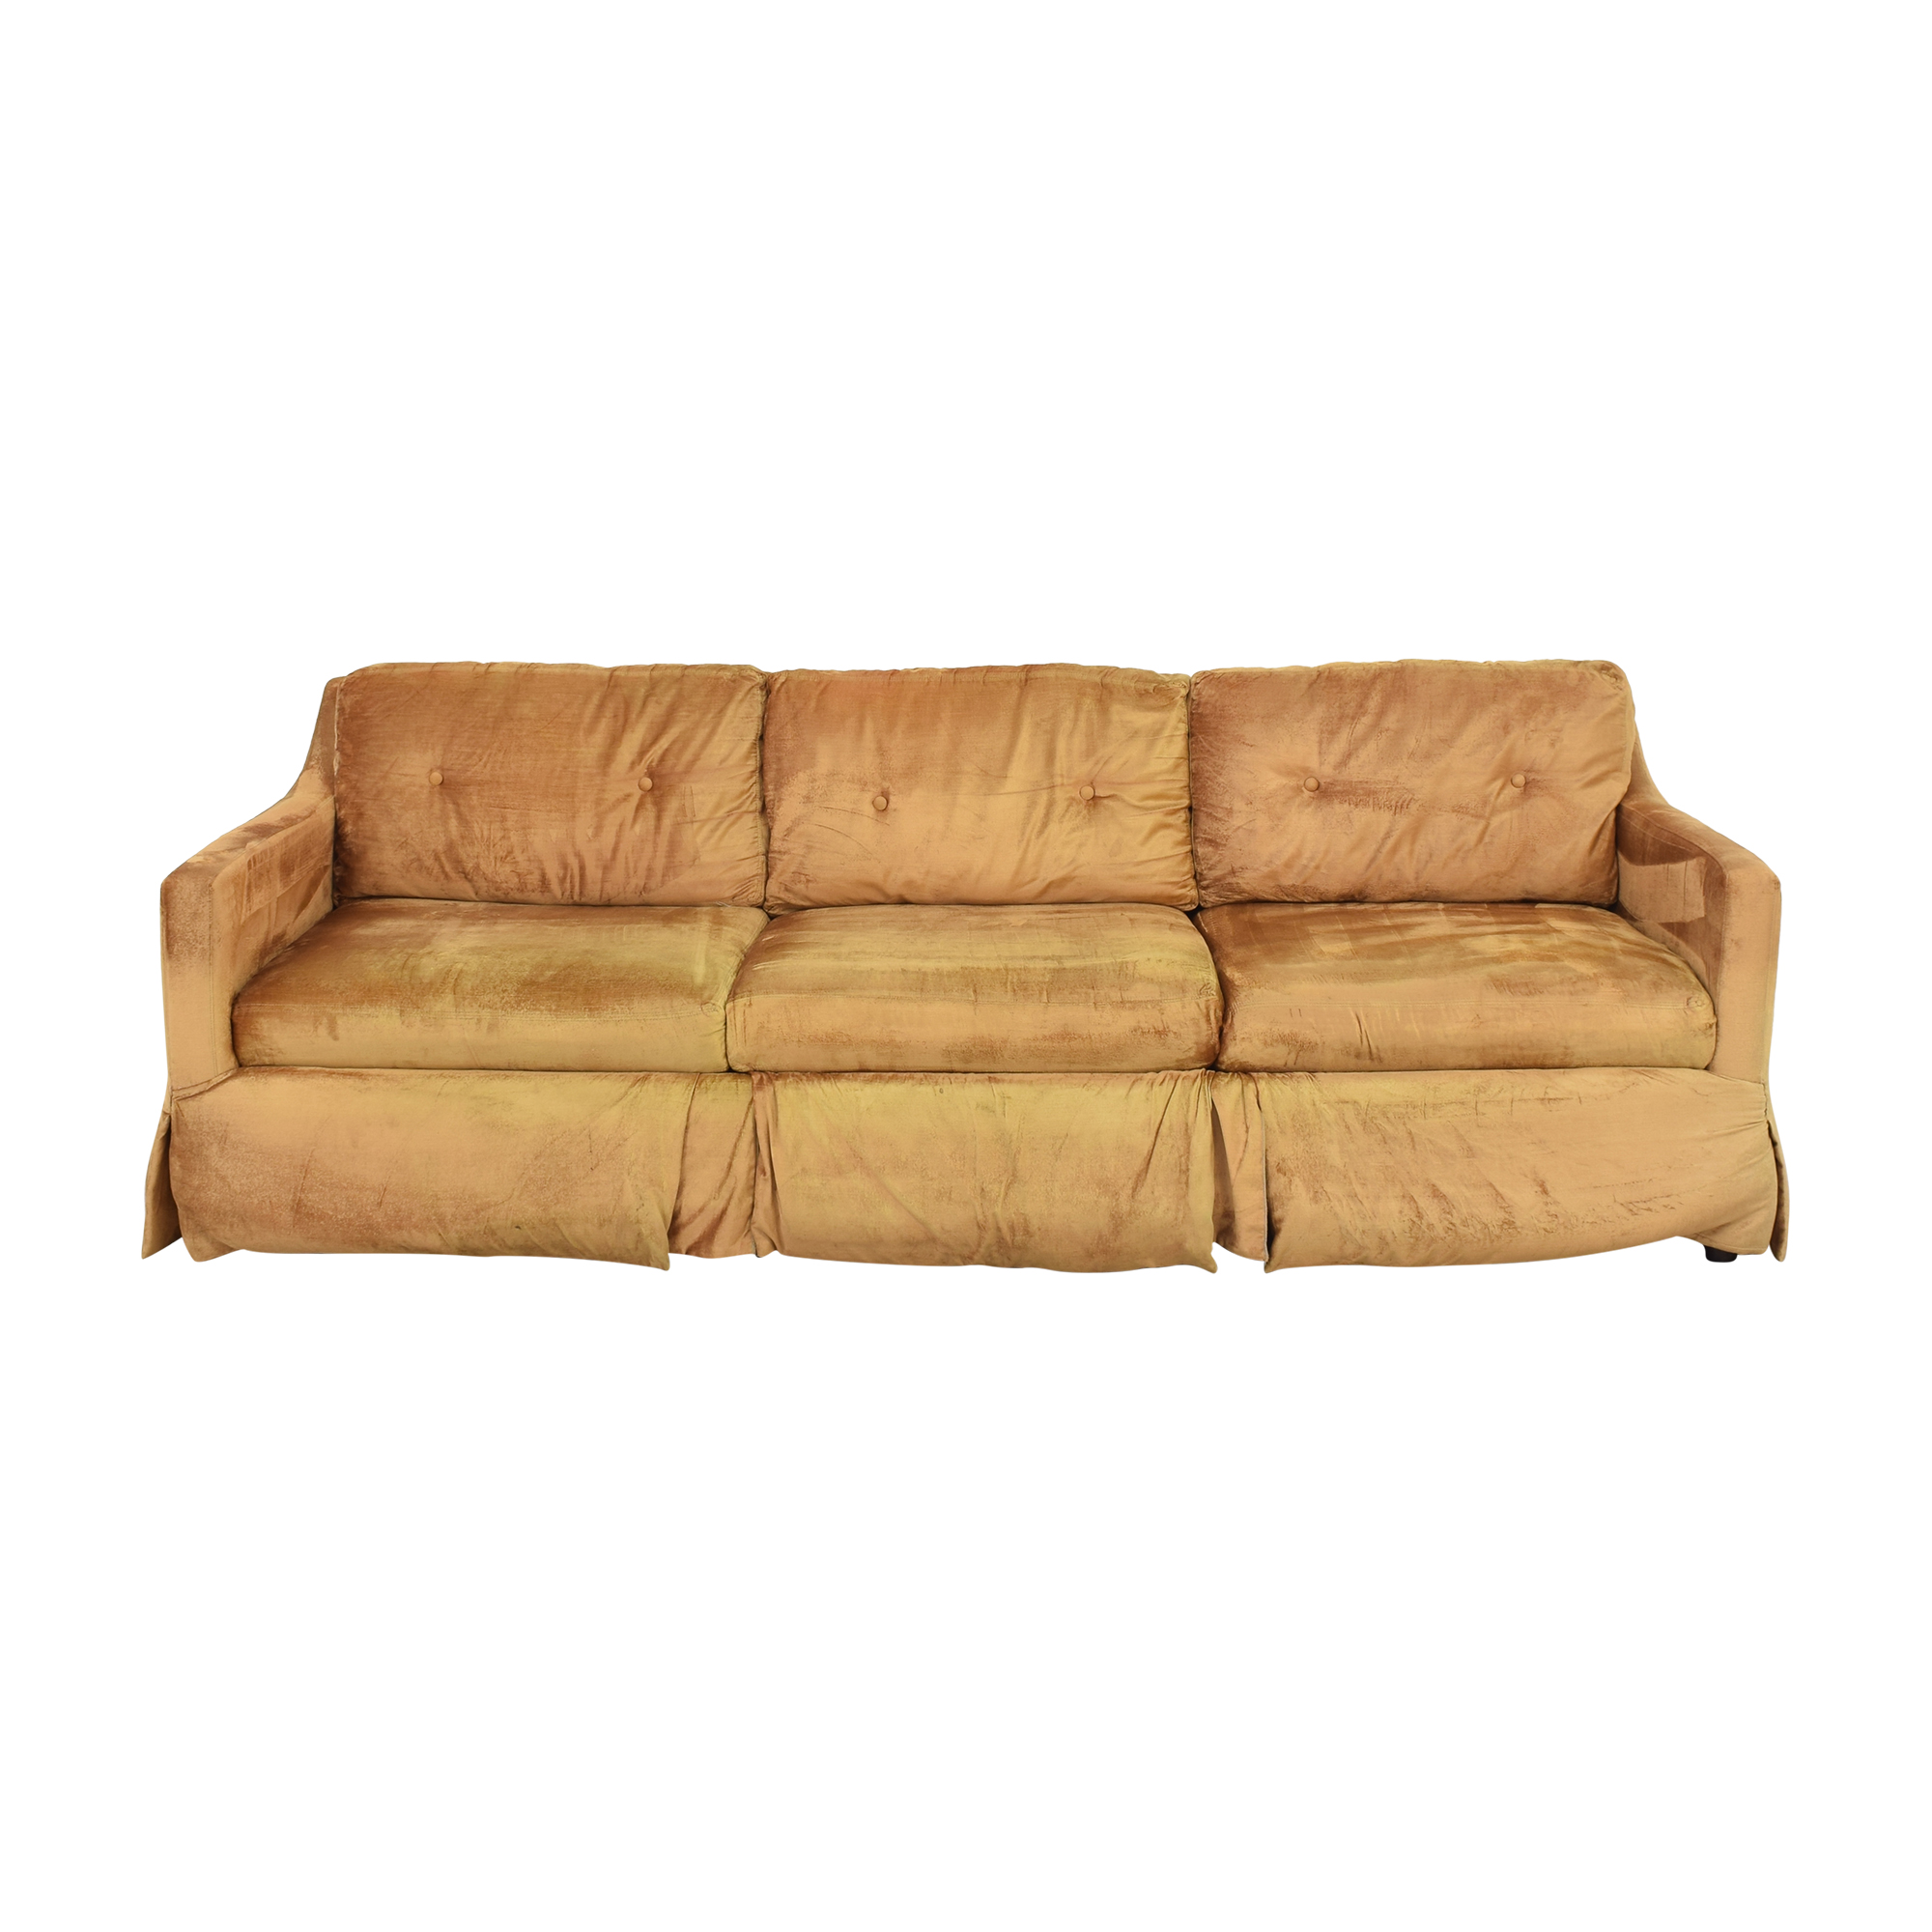 Ethan Allen Ethan Allen Skirted Sofa for sale